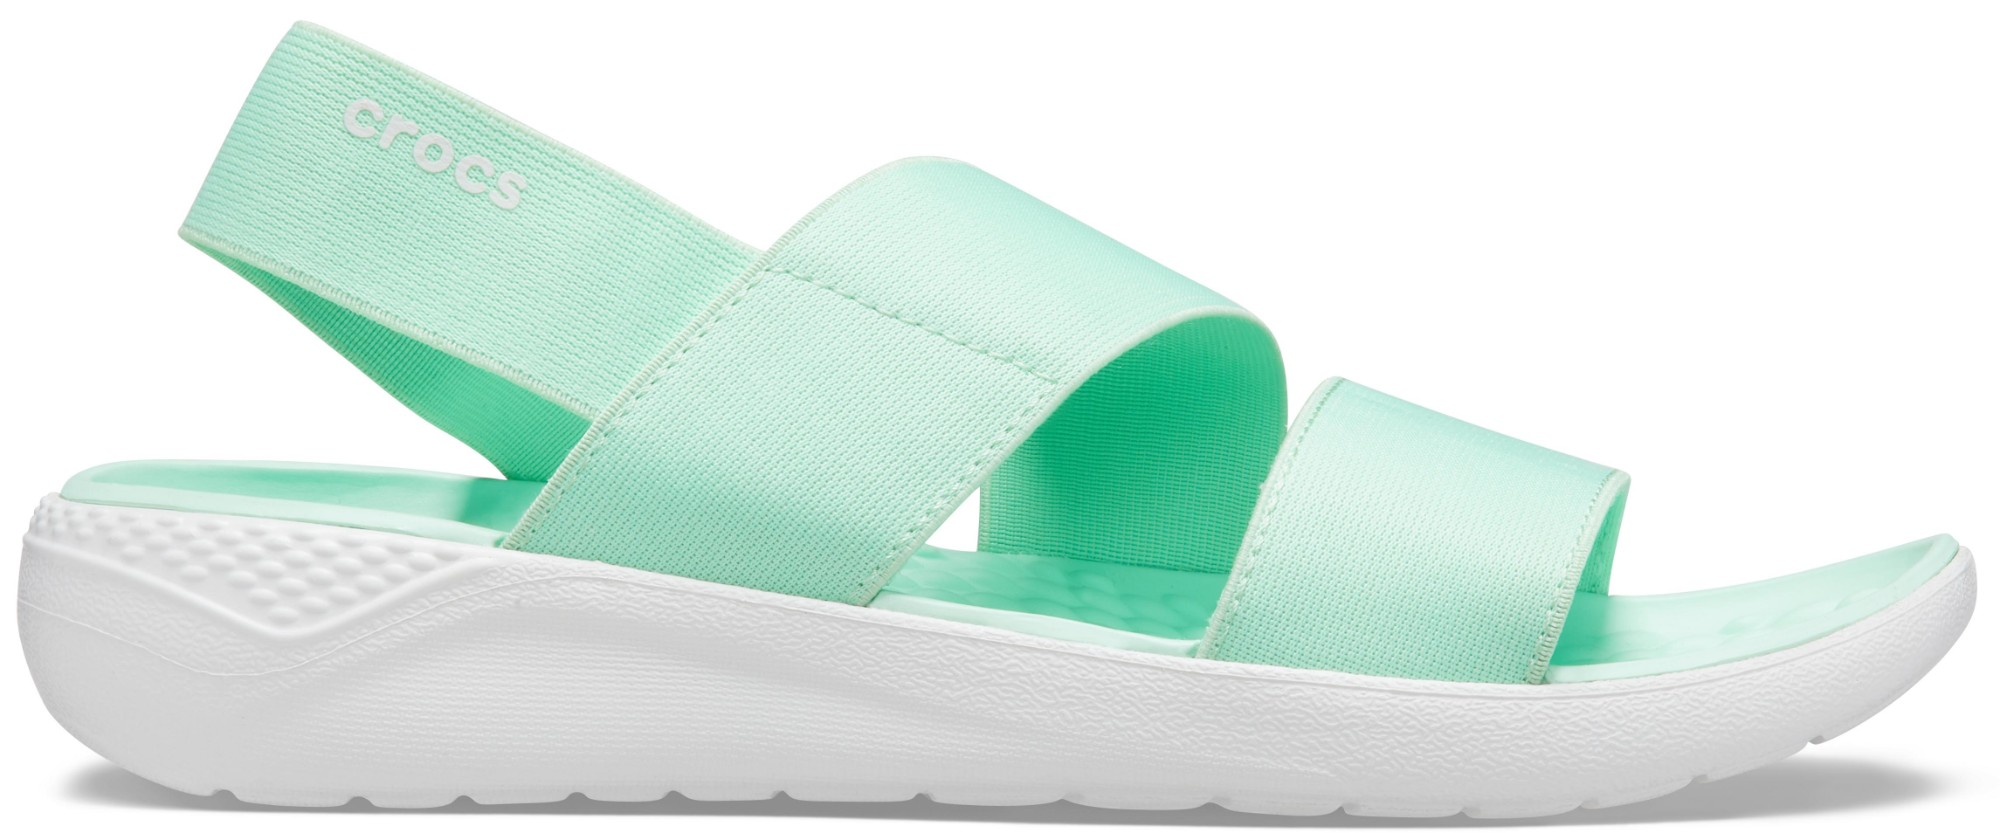 Crocs™ Literide Stretch Sandal Womens Neo Mint/Almost White 42,5